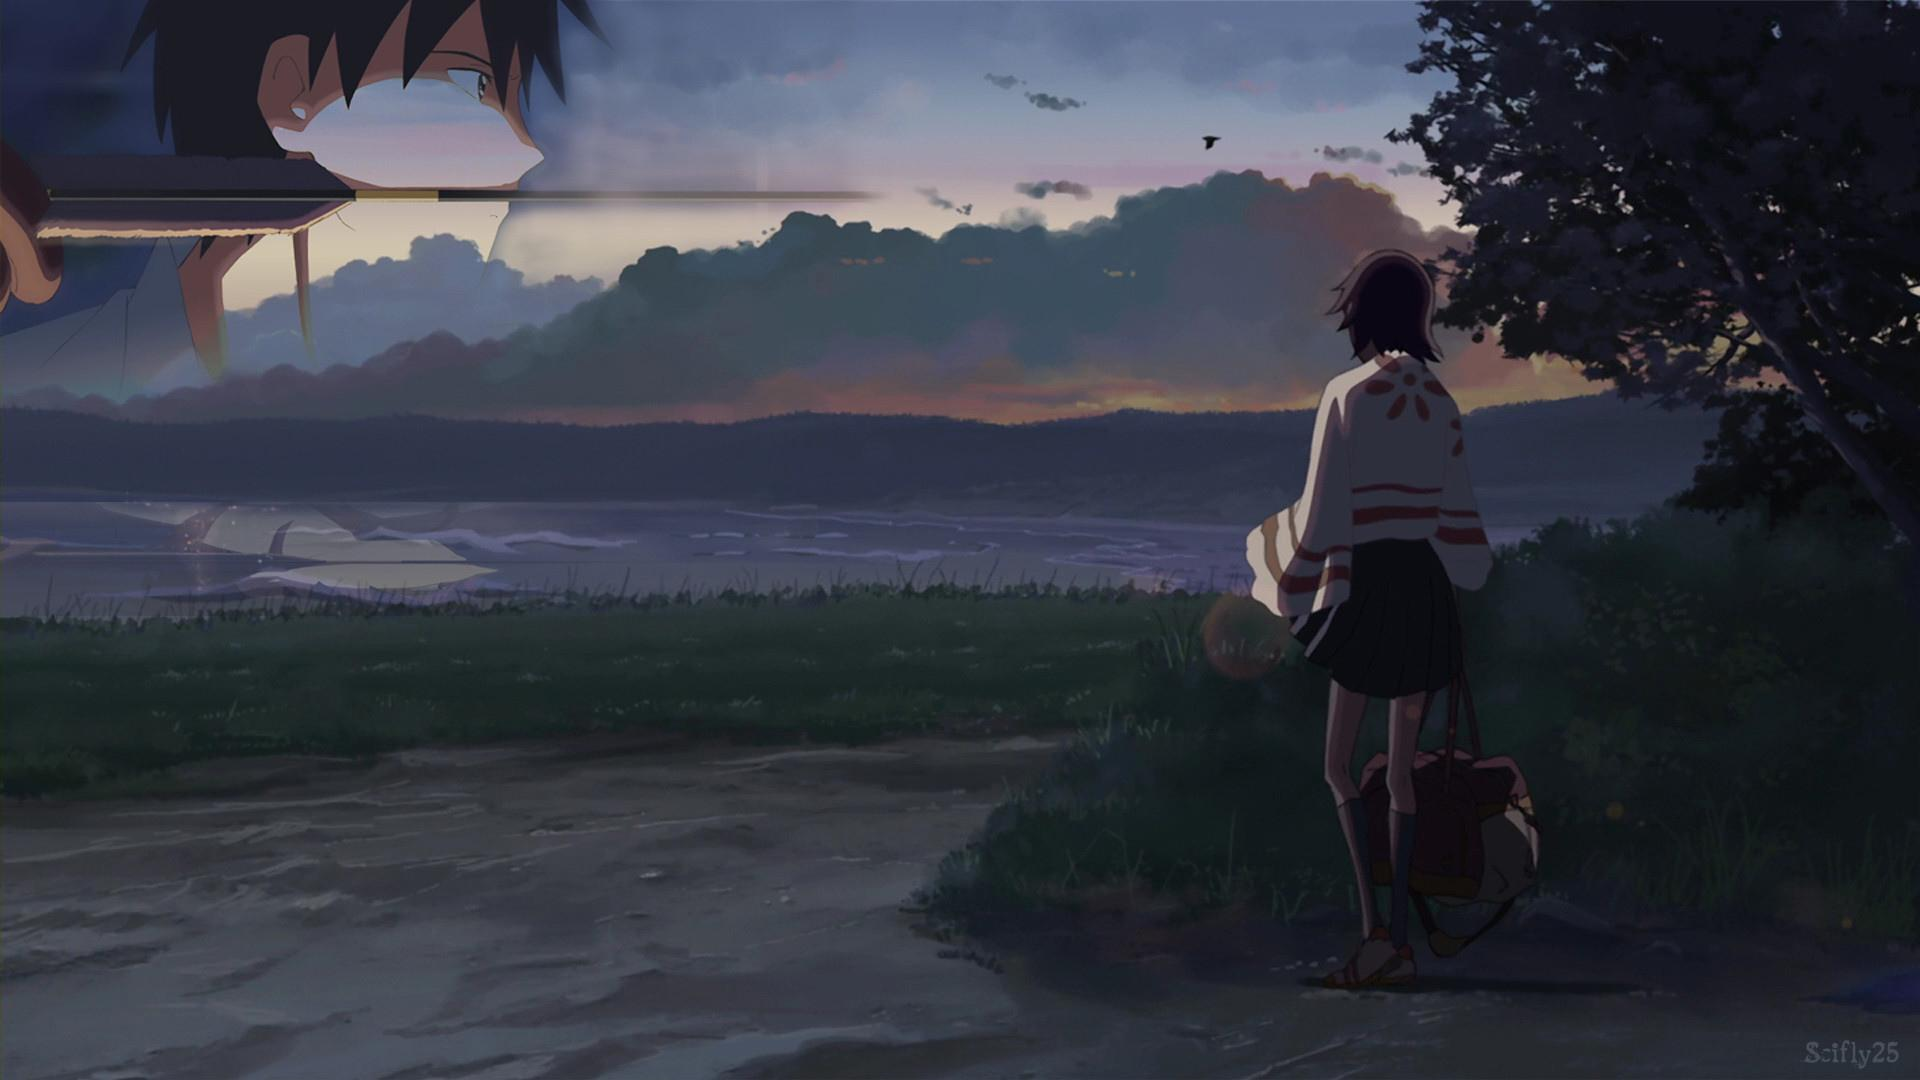 5 Centimeters Per Second Wallpaper Hd Posted By Michelle Anderson